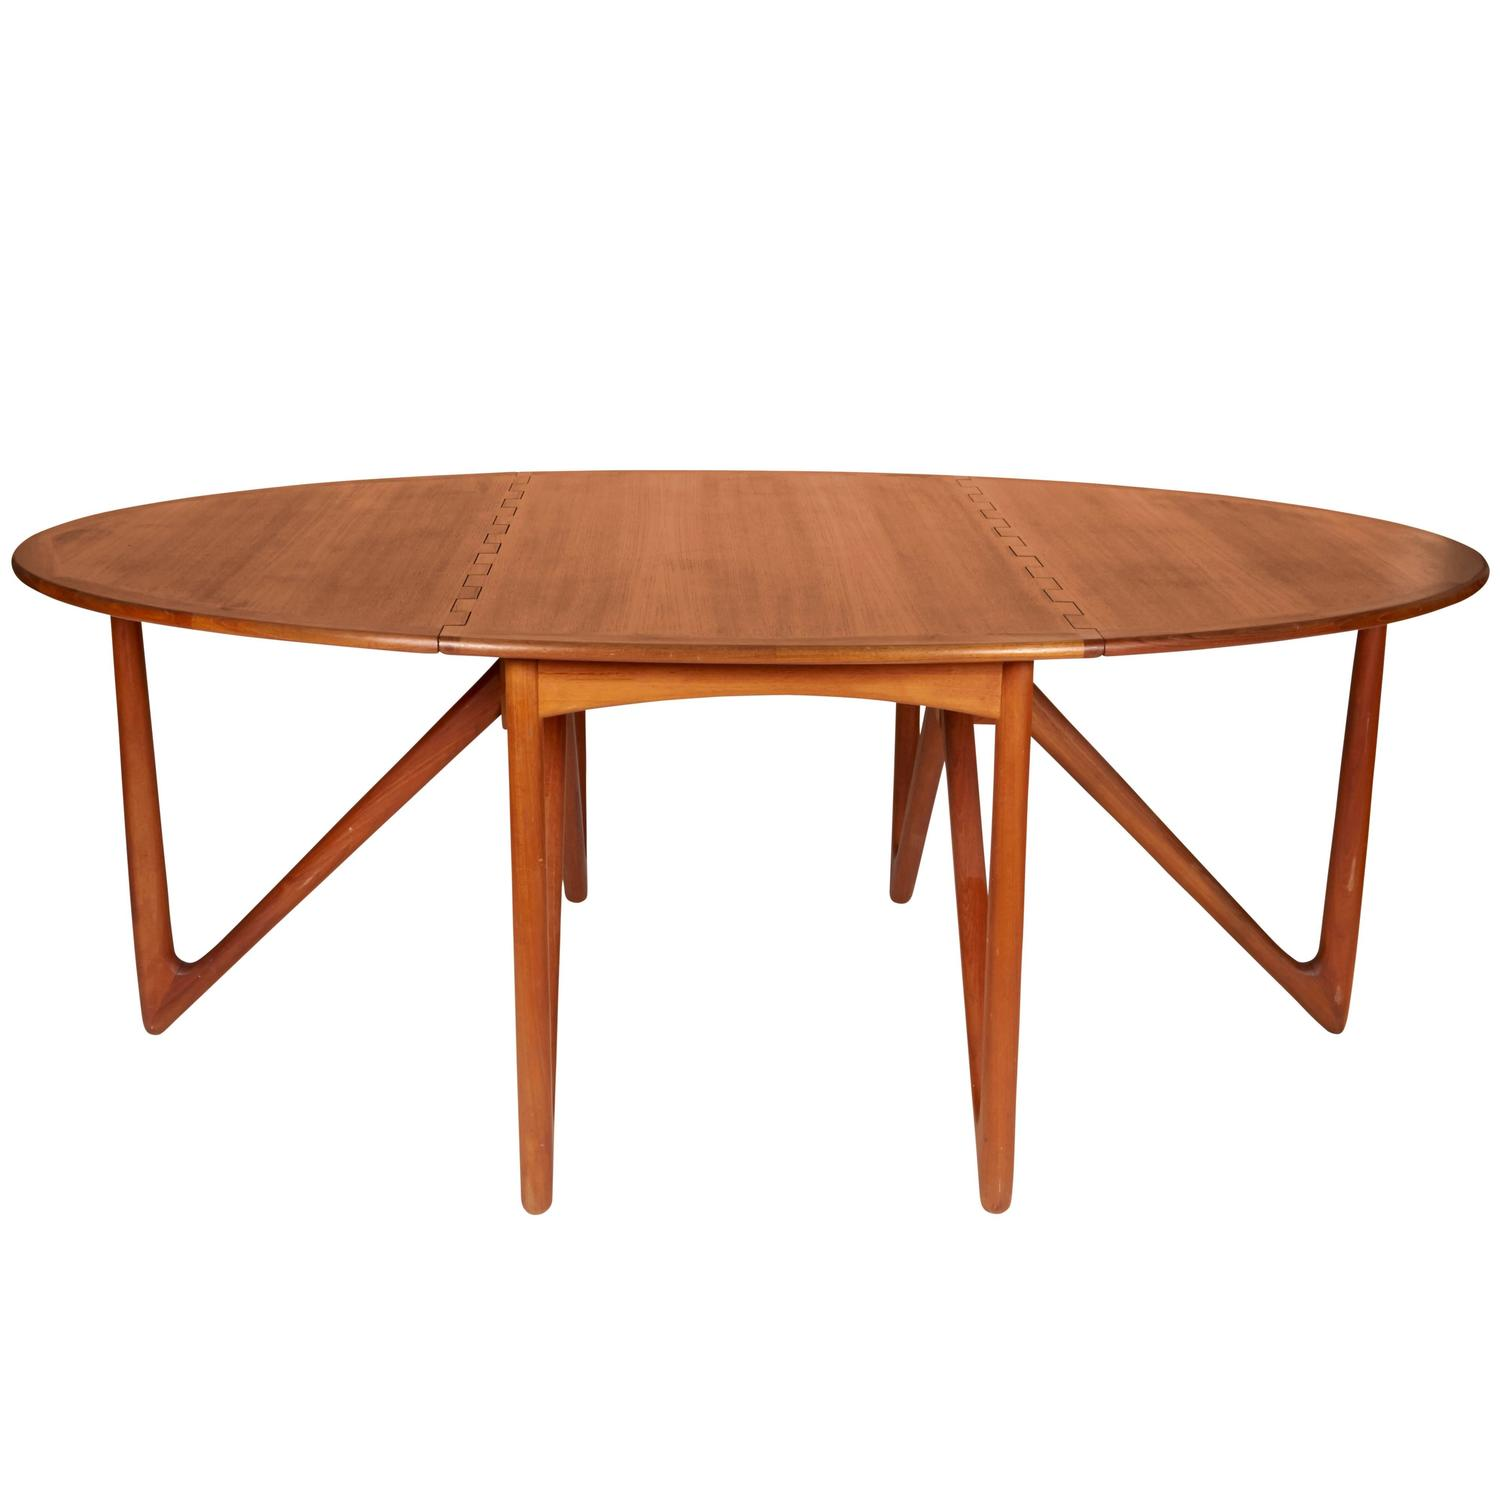 Niels Kofoed Drop-Leaf Teak Dining Table For Sale at 1stdibs